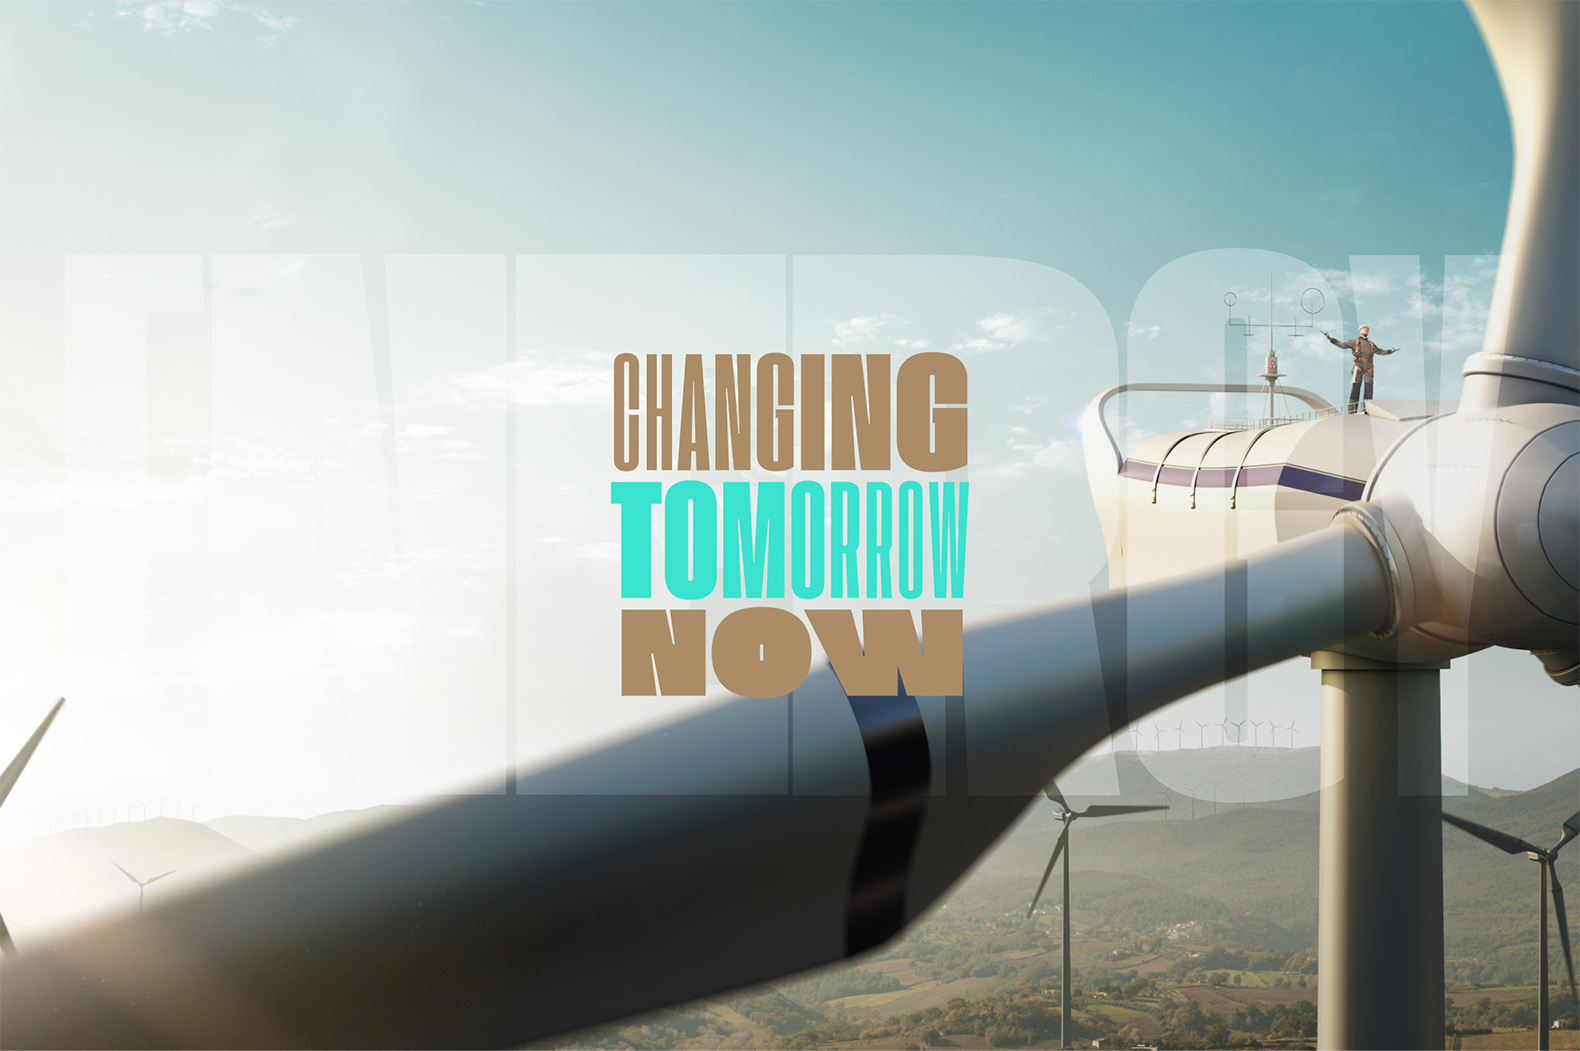 Changing Tomorrow now